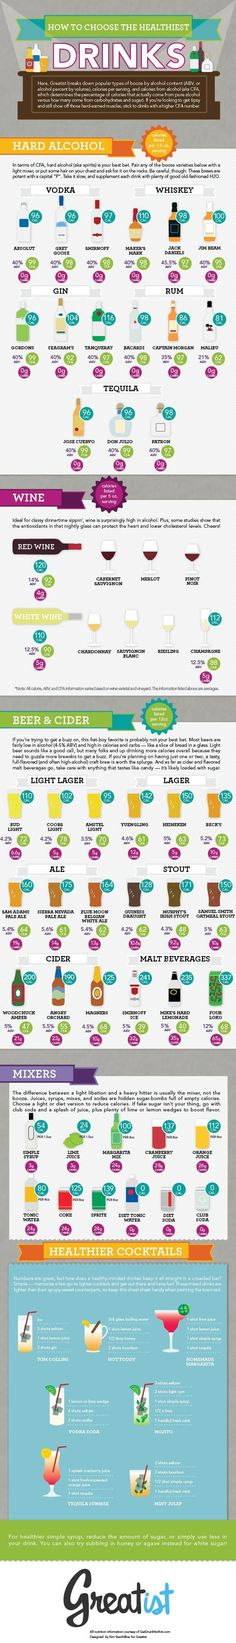 Healthier Drinking Infographic, working in a bar is making me fat here's some better booze choices